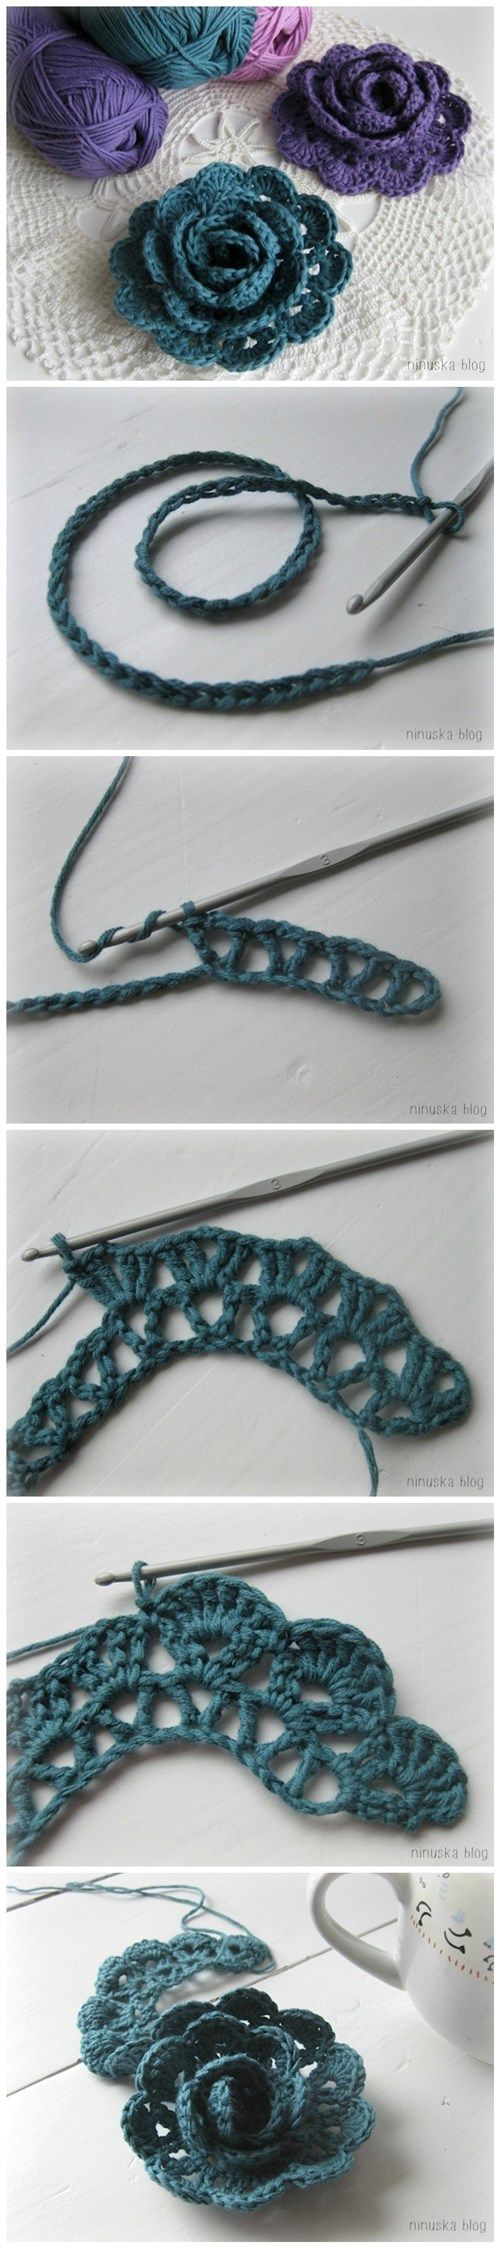 How to crochet lace ribbon rose flowers step by step DIY tutorial instructions…